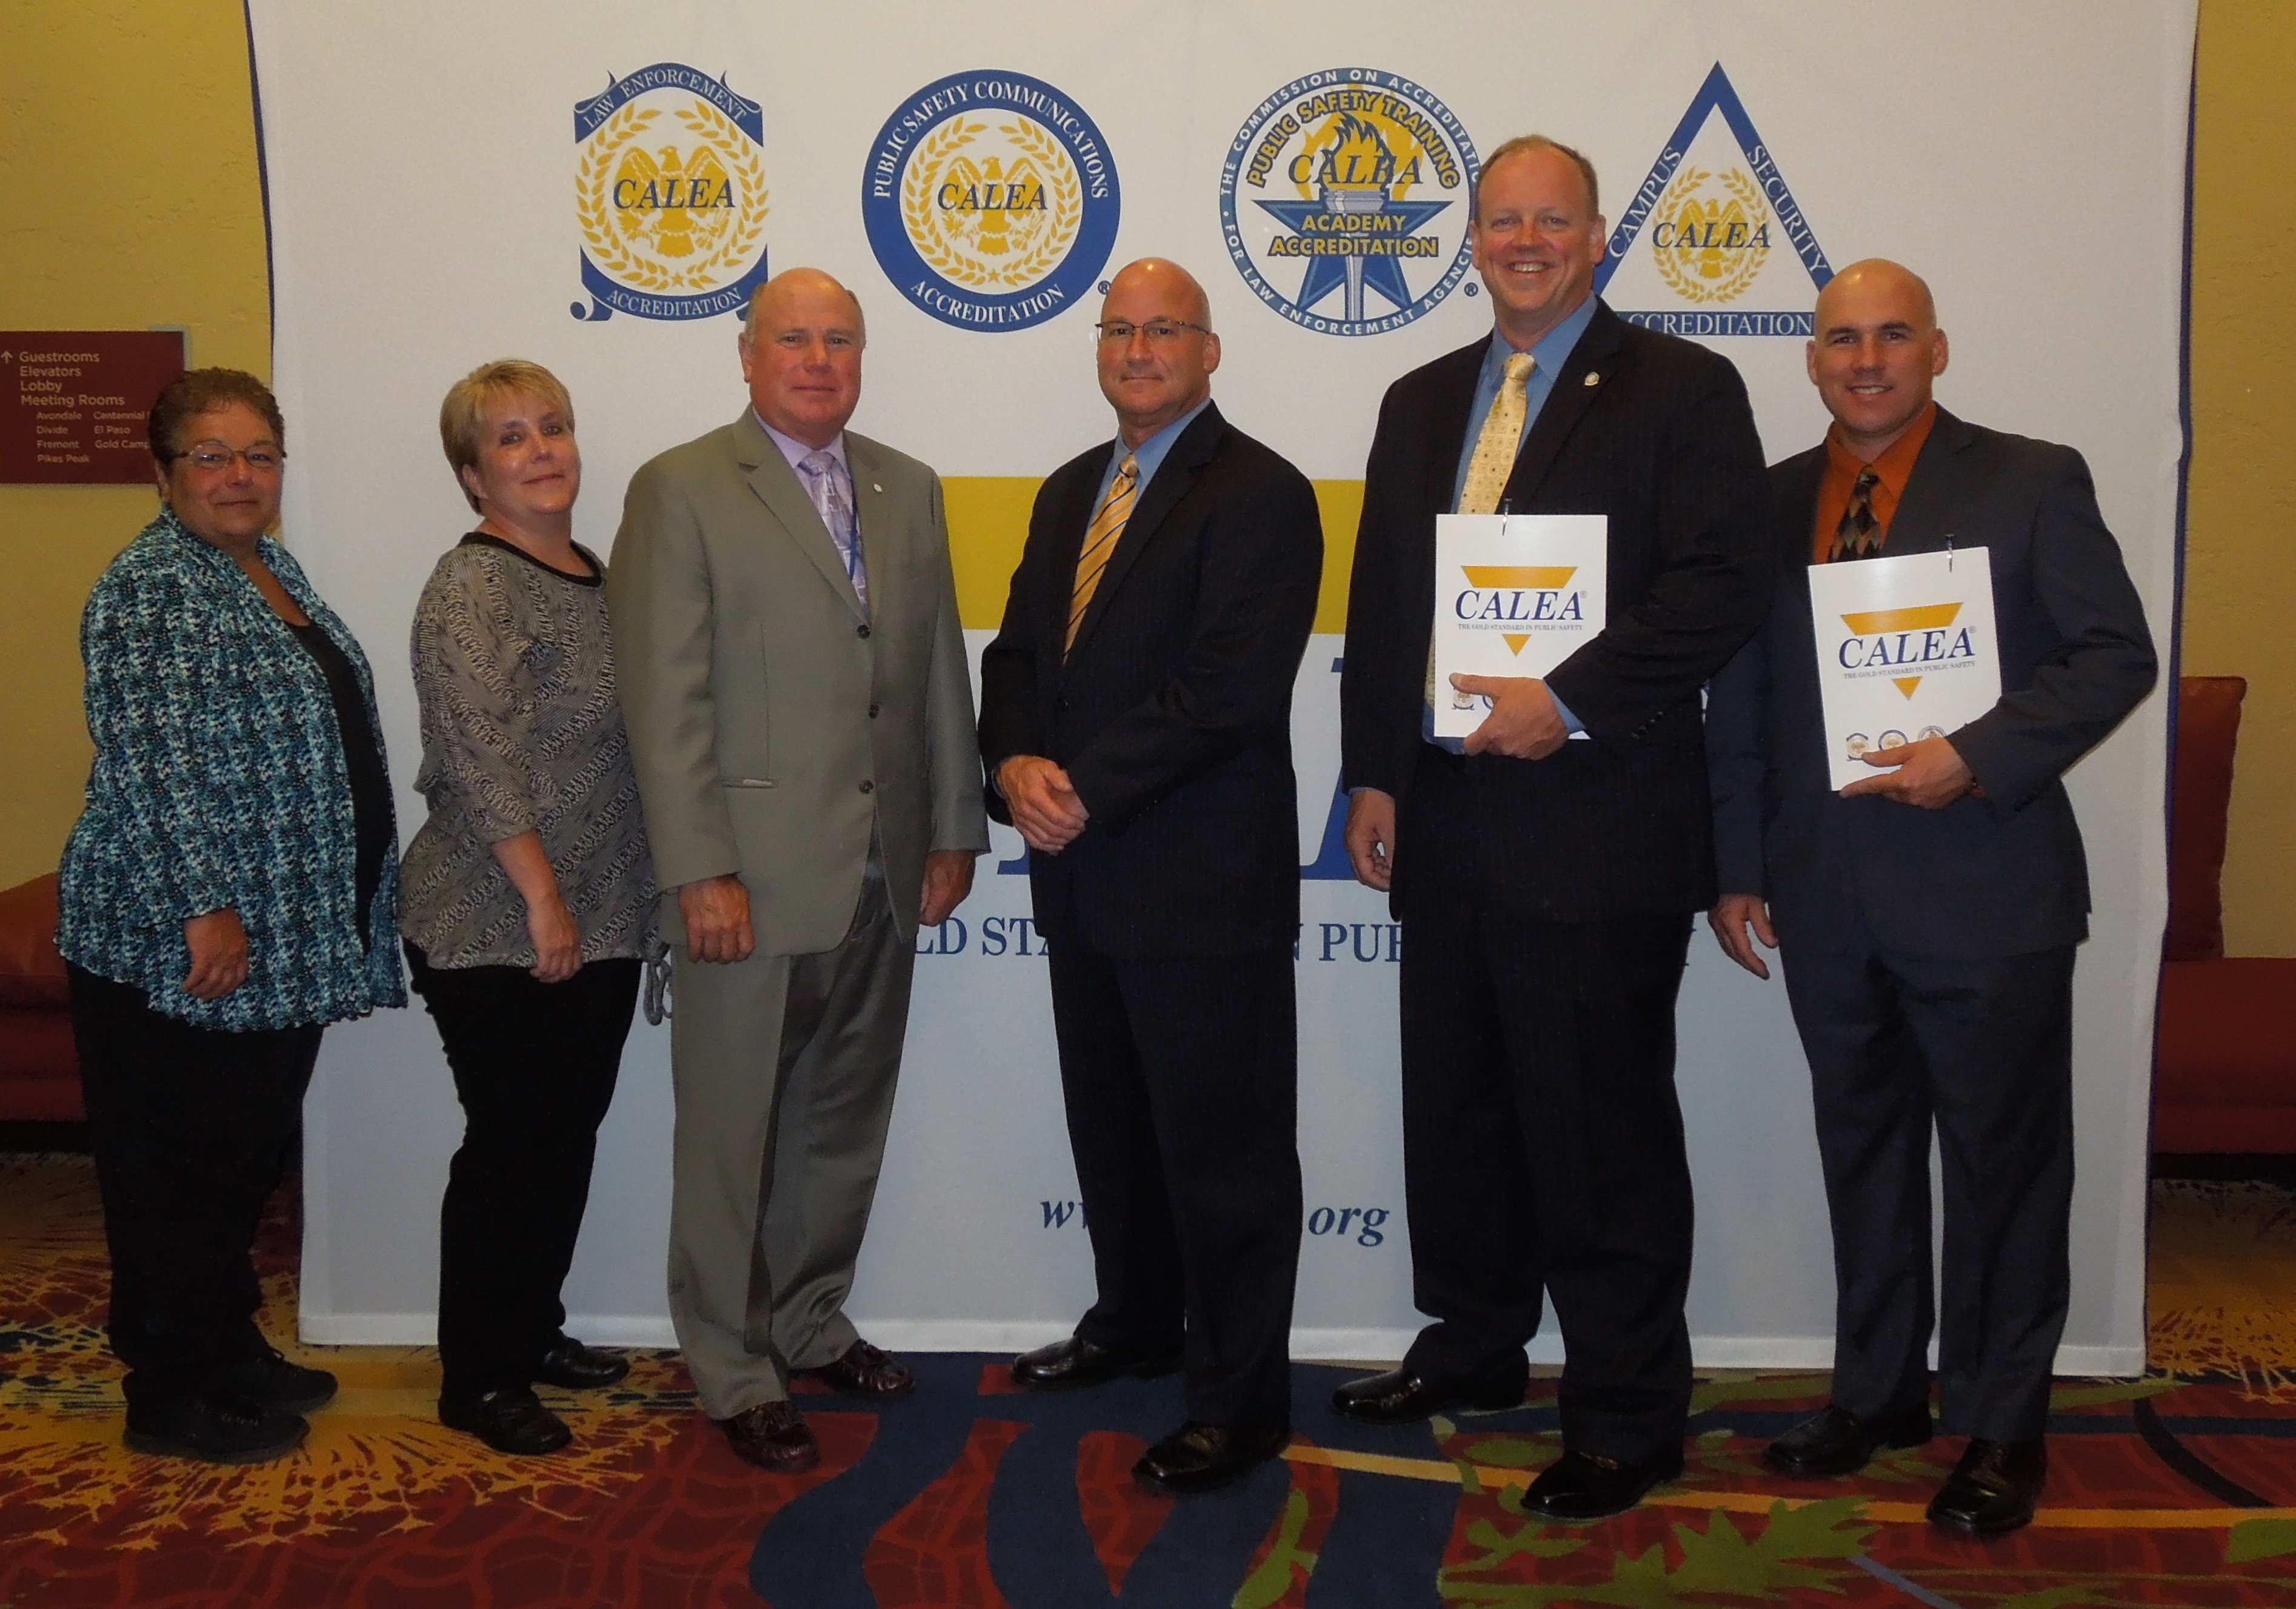 NNEPAC members and CALEA Regional Program Manager Paul MacMillan at the CALEA Conference in Colorado Springs, CO. (July 2015)